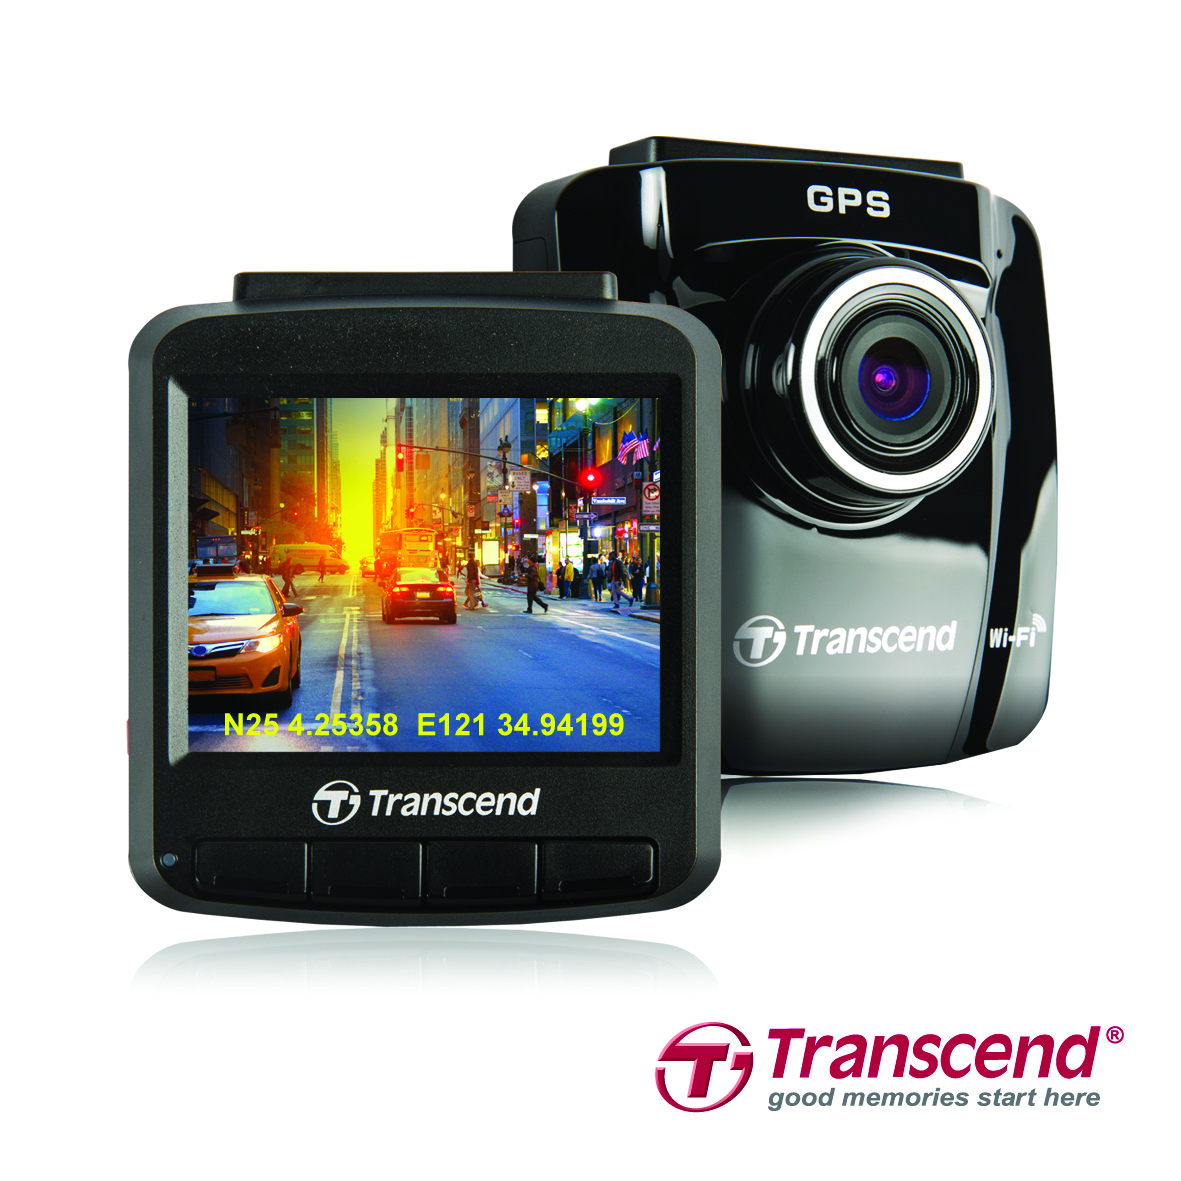 Transcend Releases DrivePro 220 Car Video Recorder with Built-in GPS